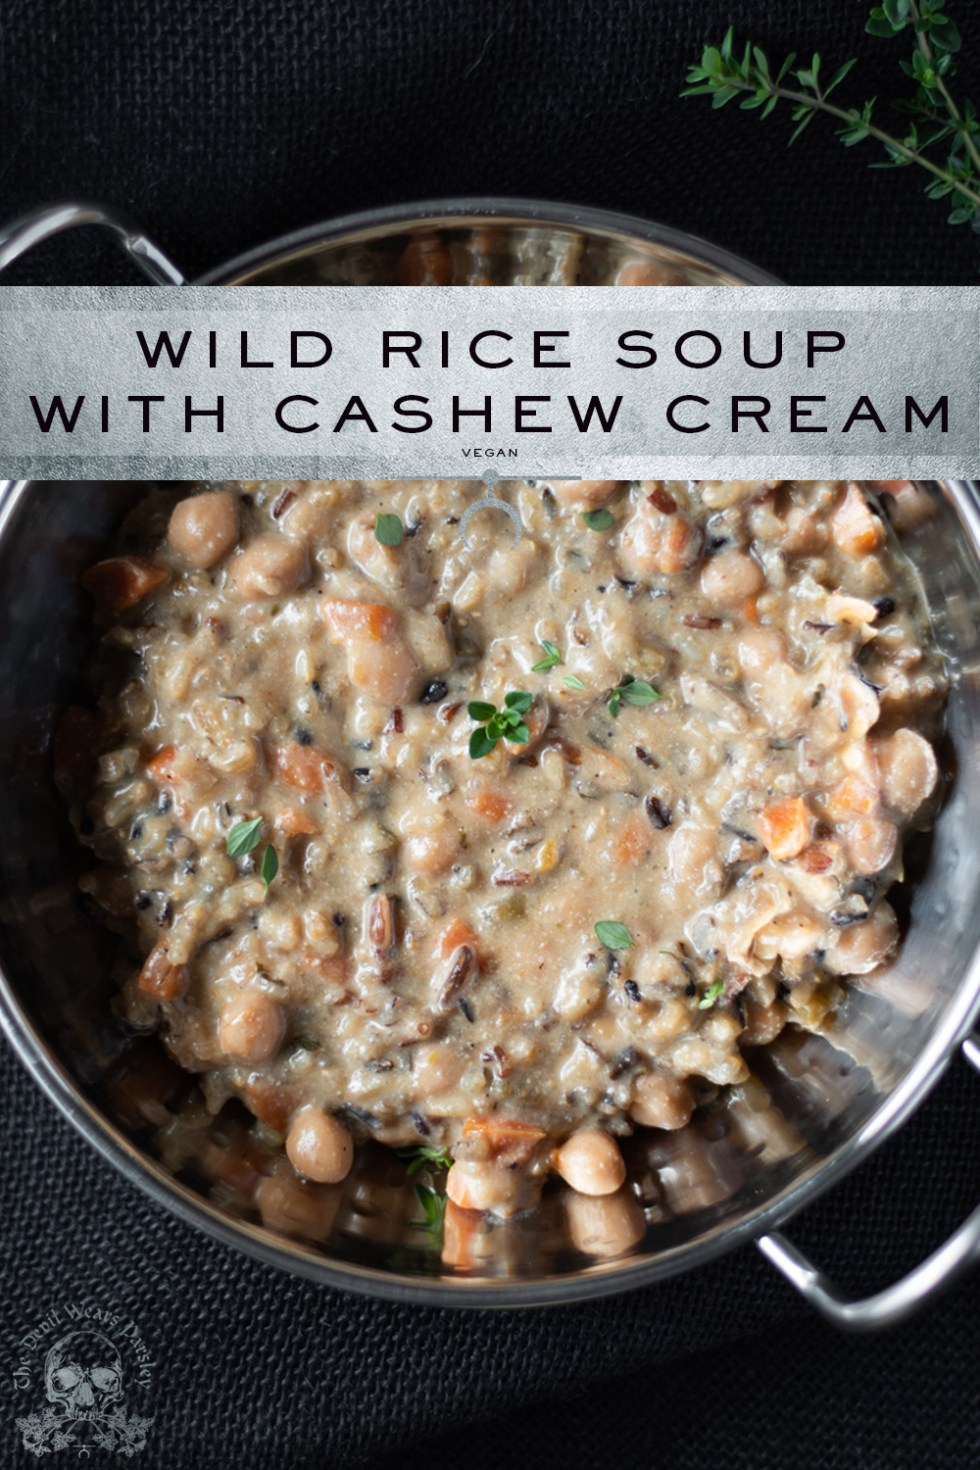 Vegan Wild Rice Soup with Cashew Cream from the *NEW* Gluten Free Instant Pot Cookbook!